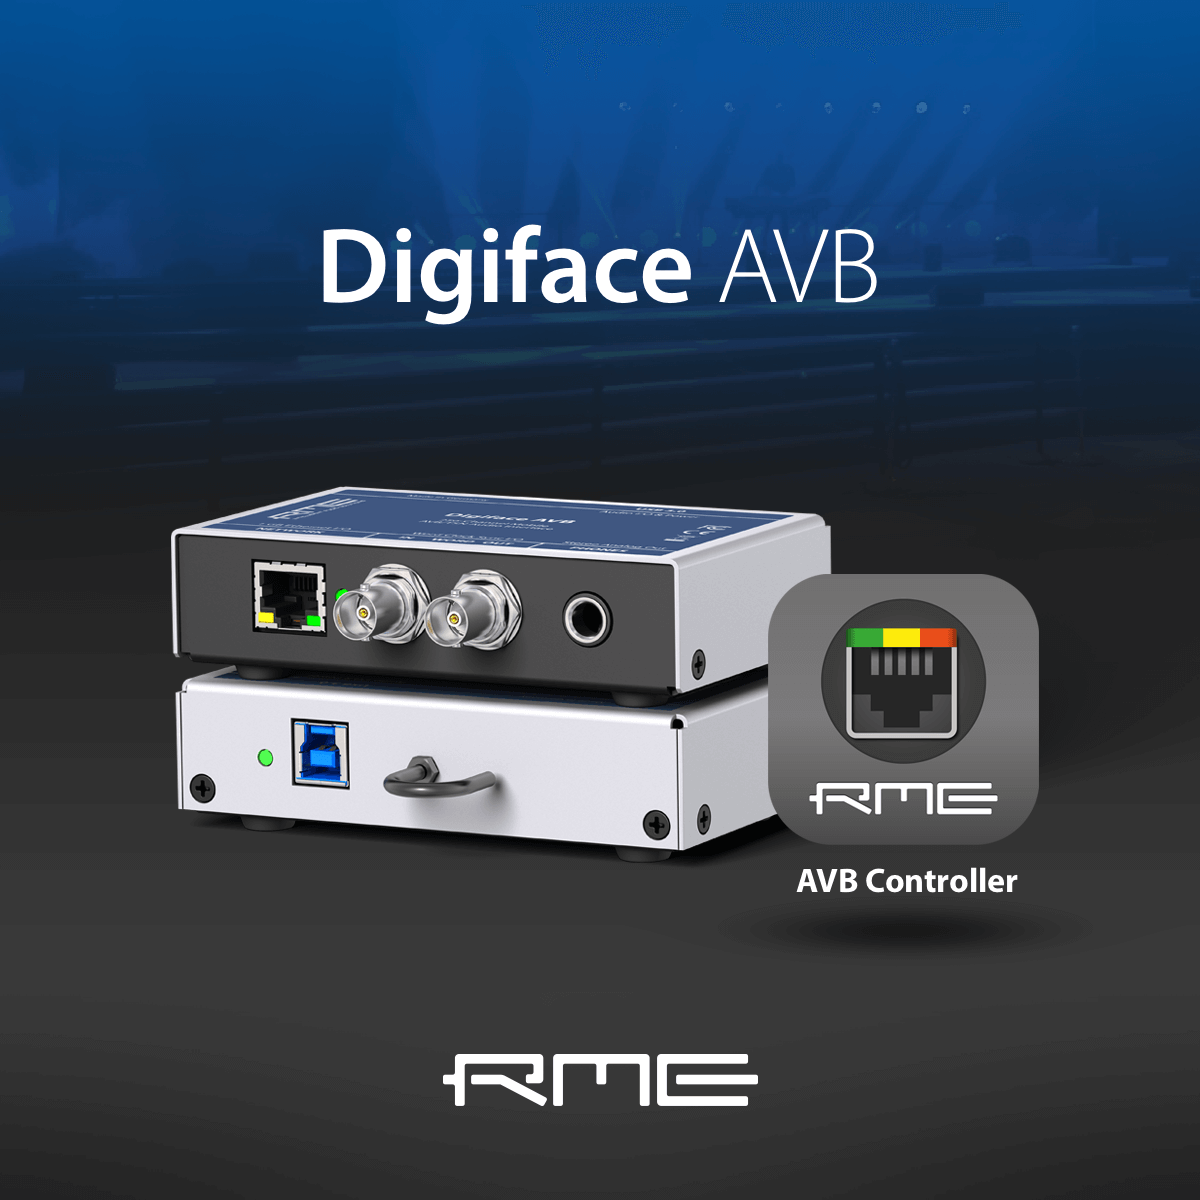 Download the latest Driver, Firmware & RME AVB Controller